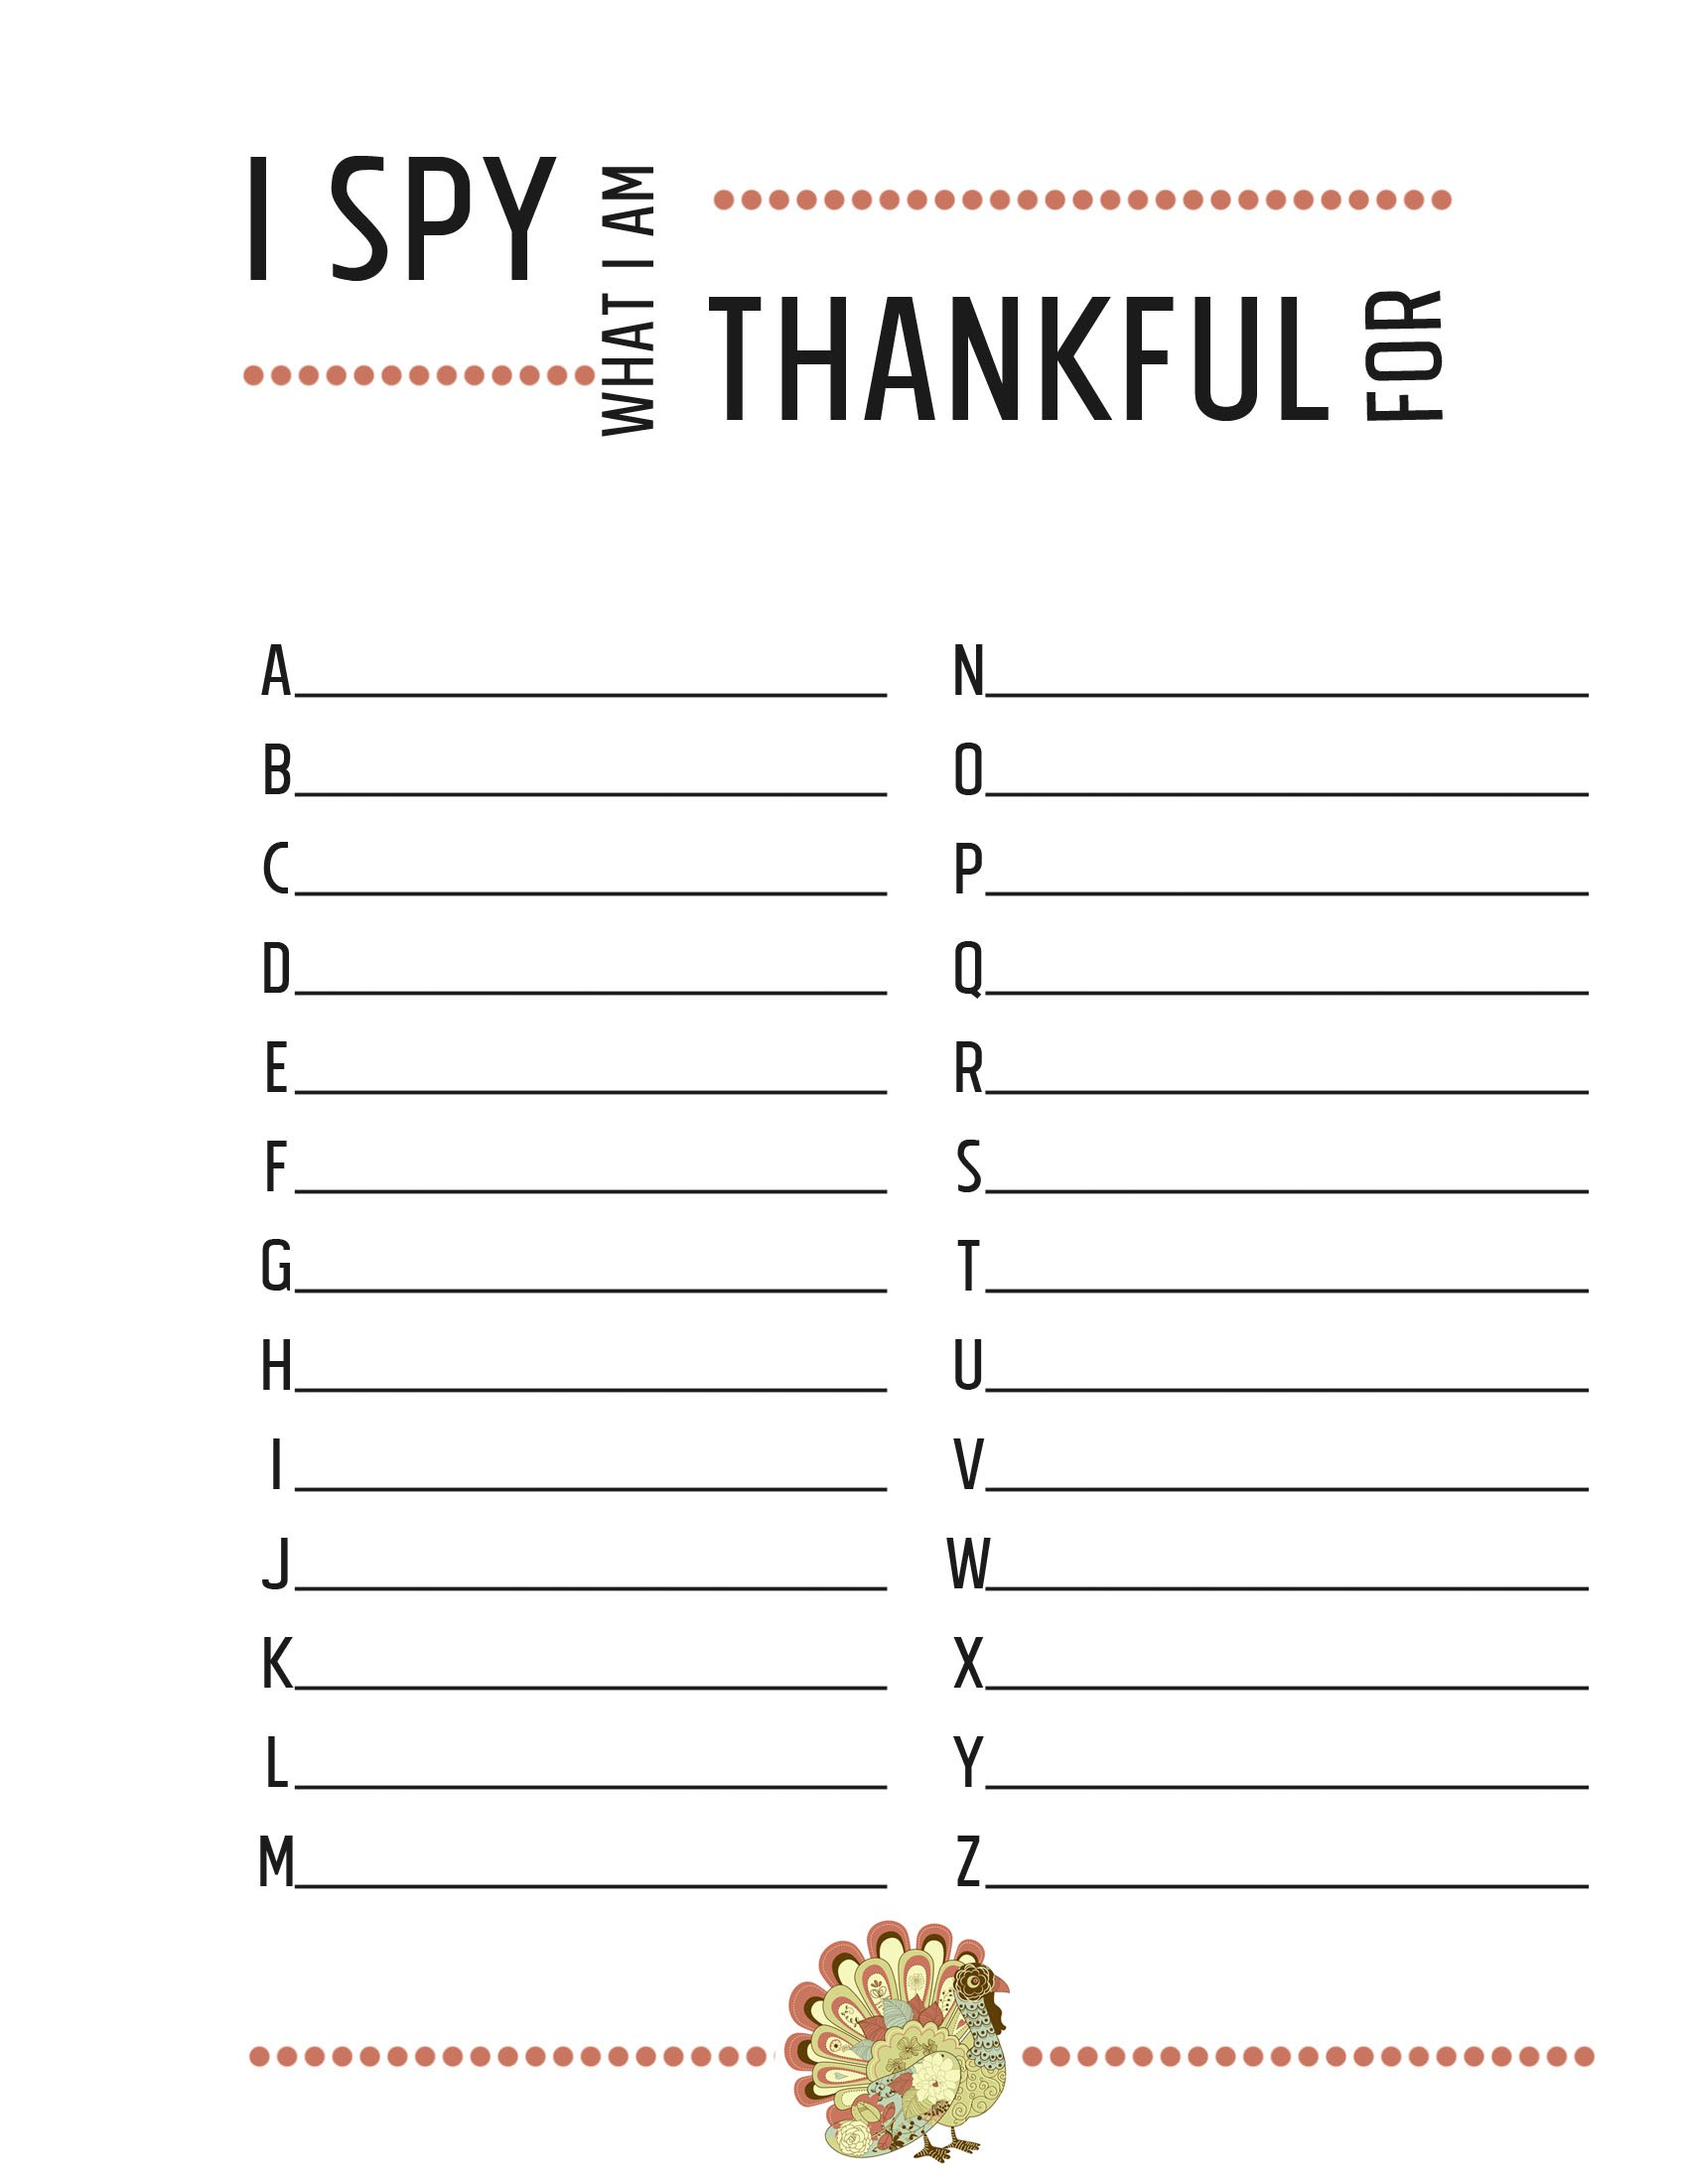 celebrate-picture-bks-picture-book-review-thanksgiving-worksheets-i-spy-alphabet